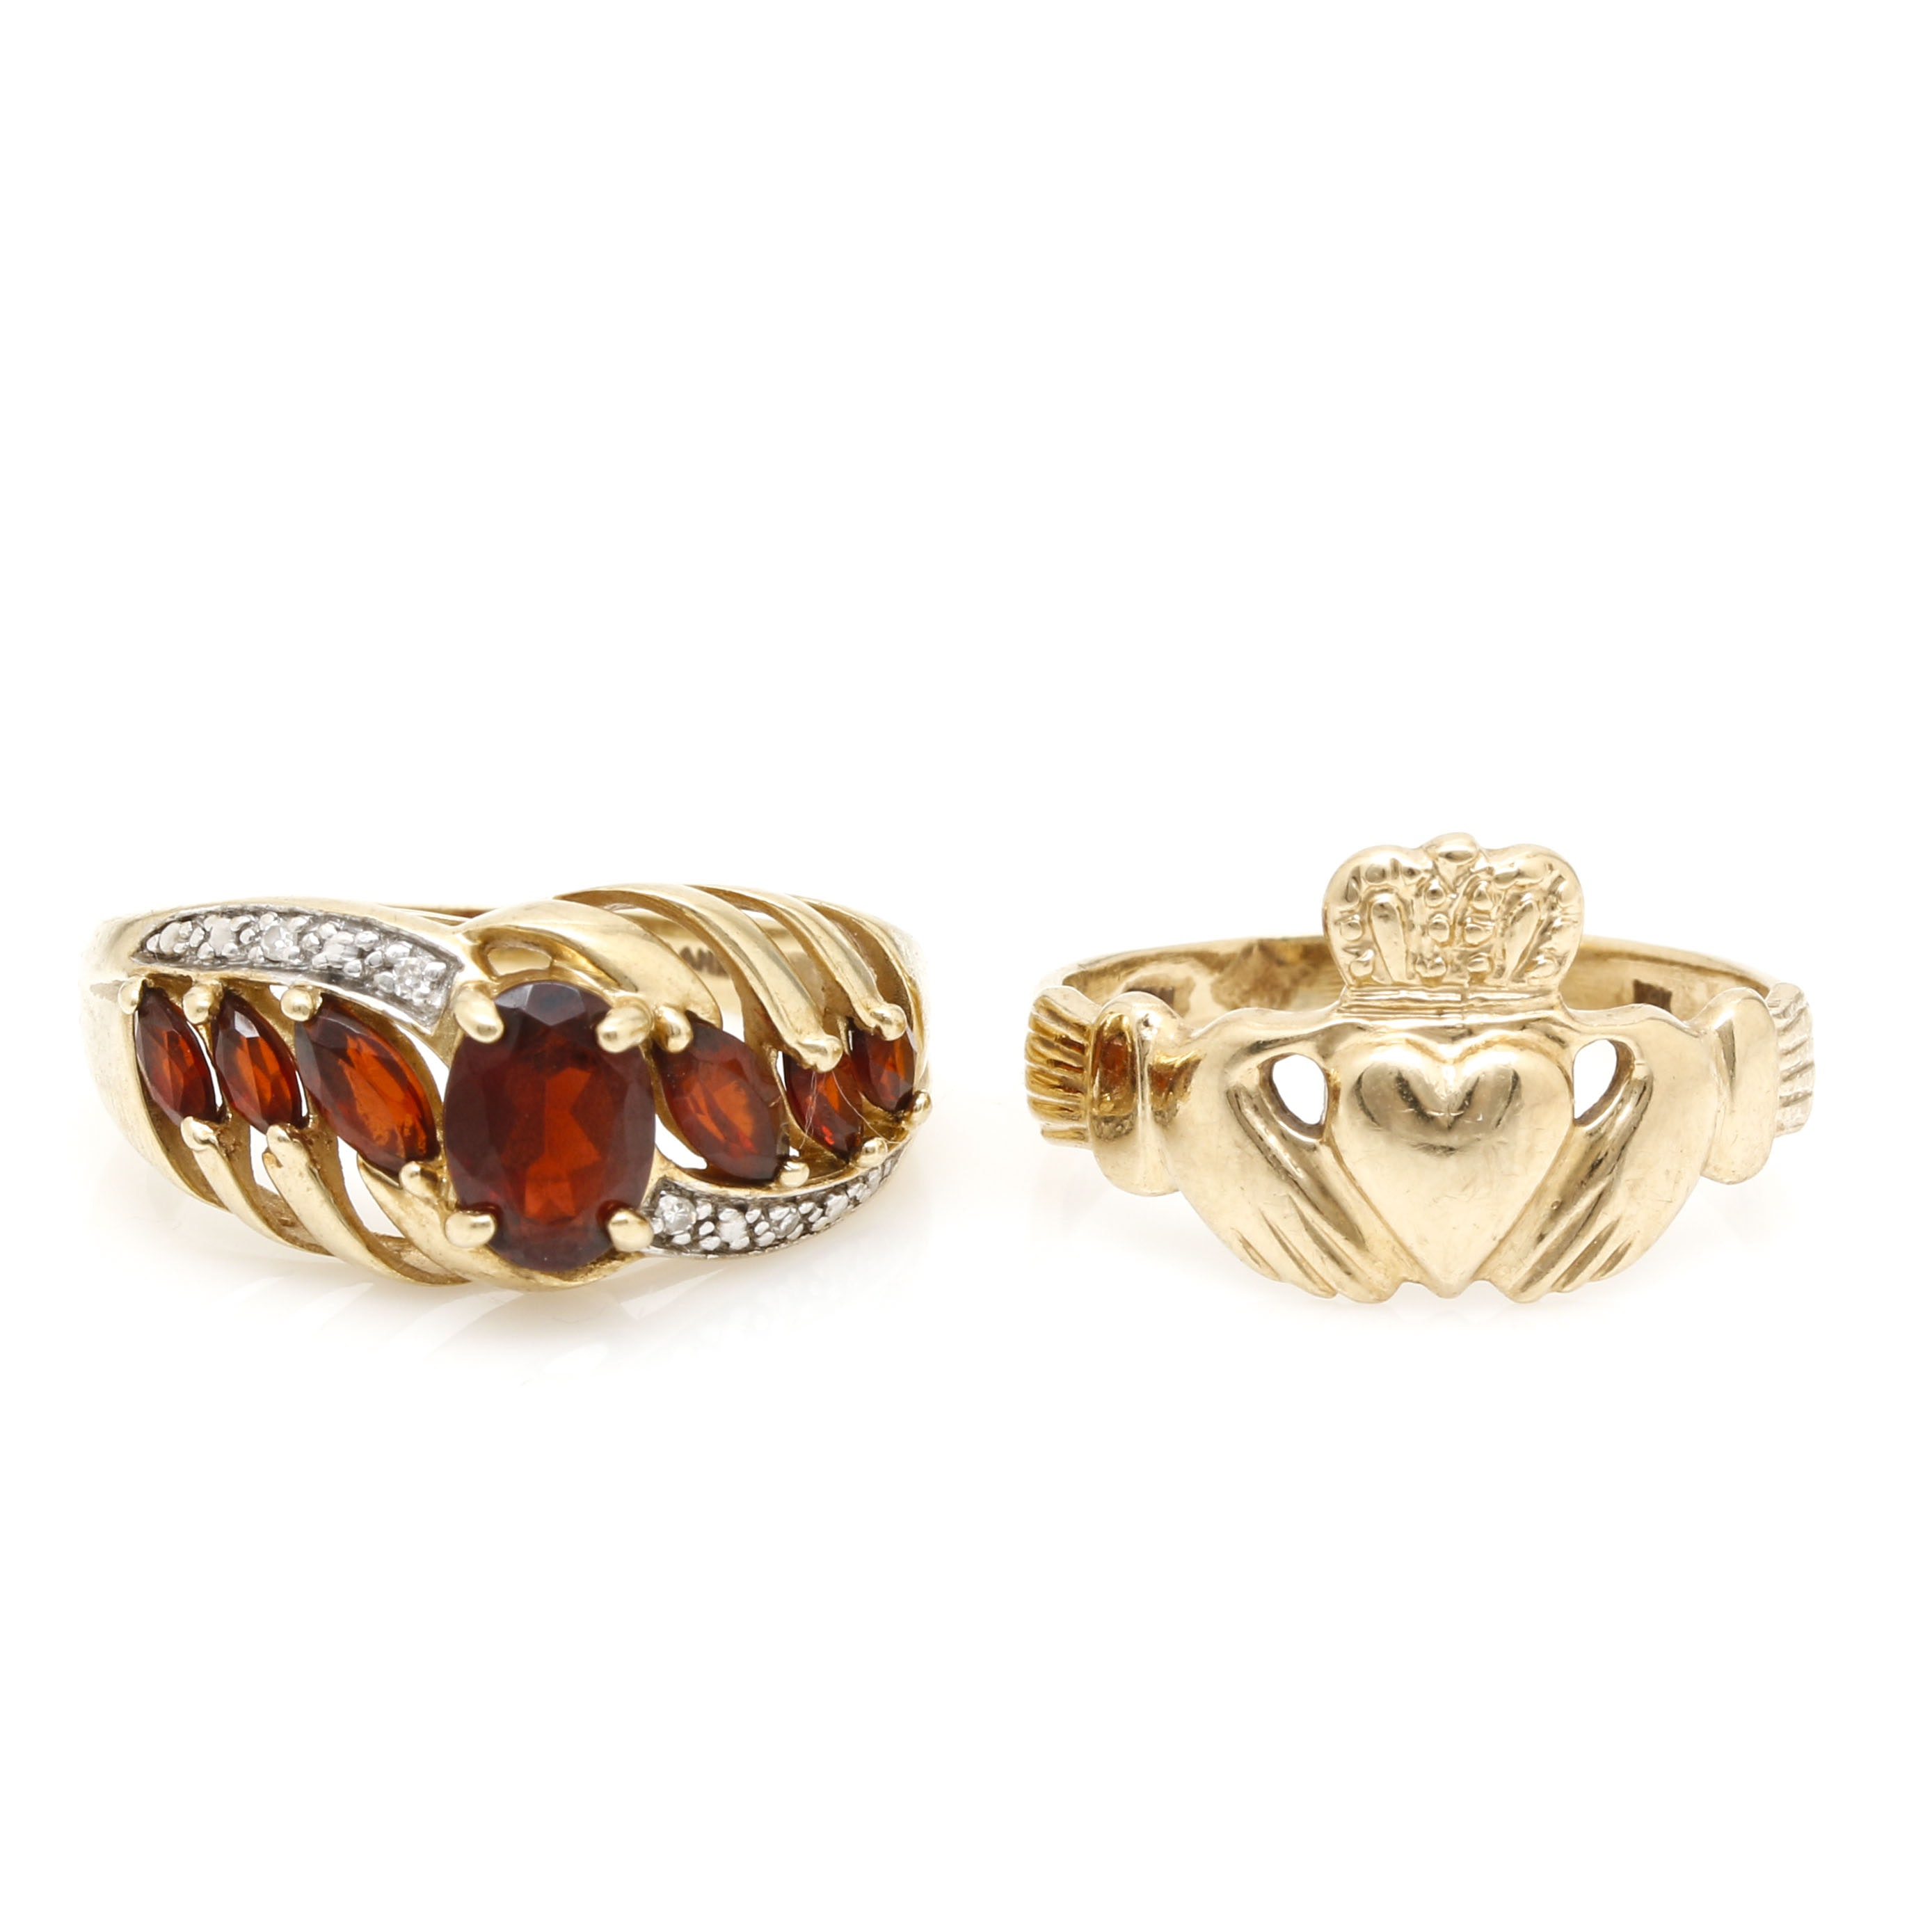 10K Yellow Gold Rings Including Garnet and Diamonds